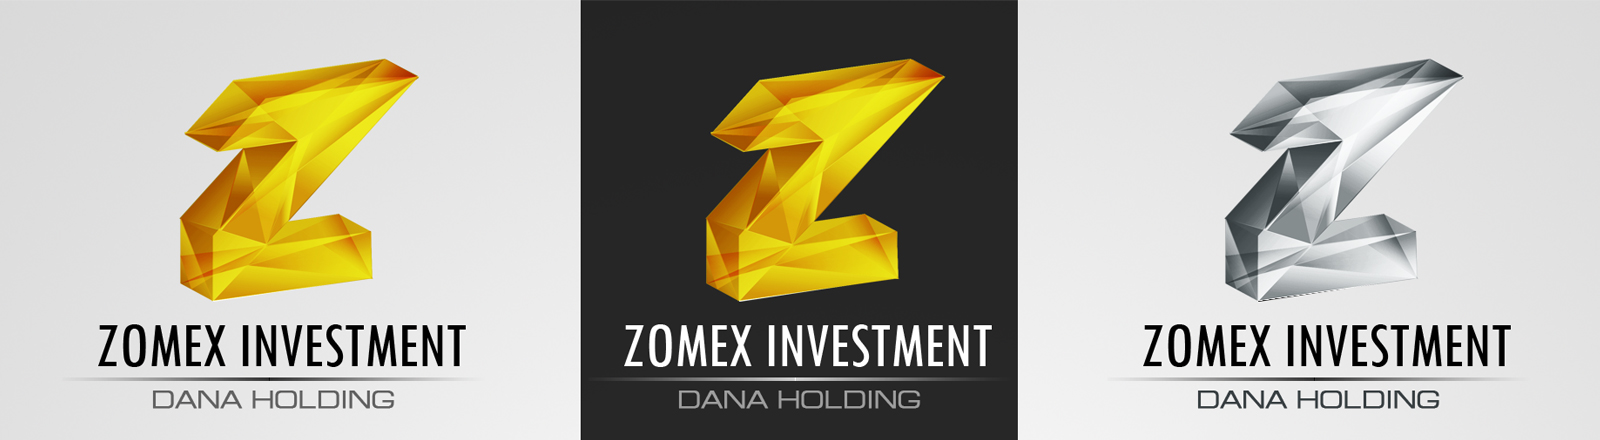 Zomex Investment